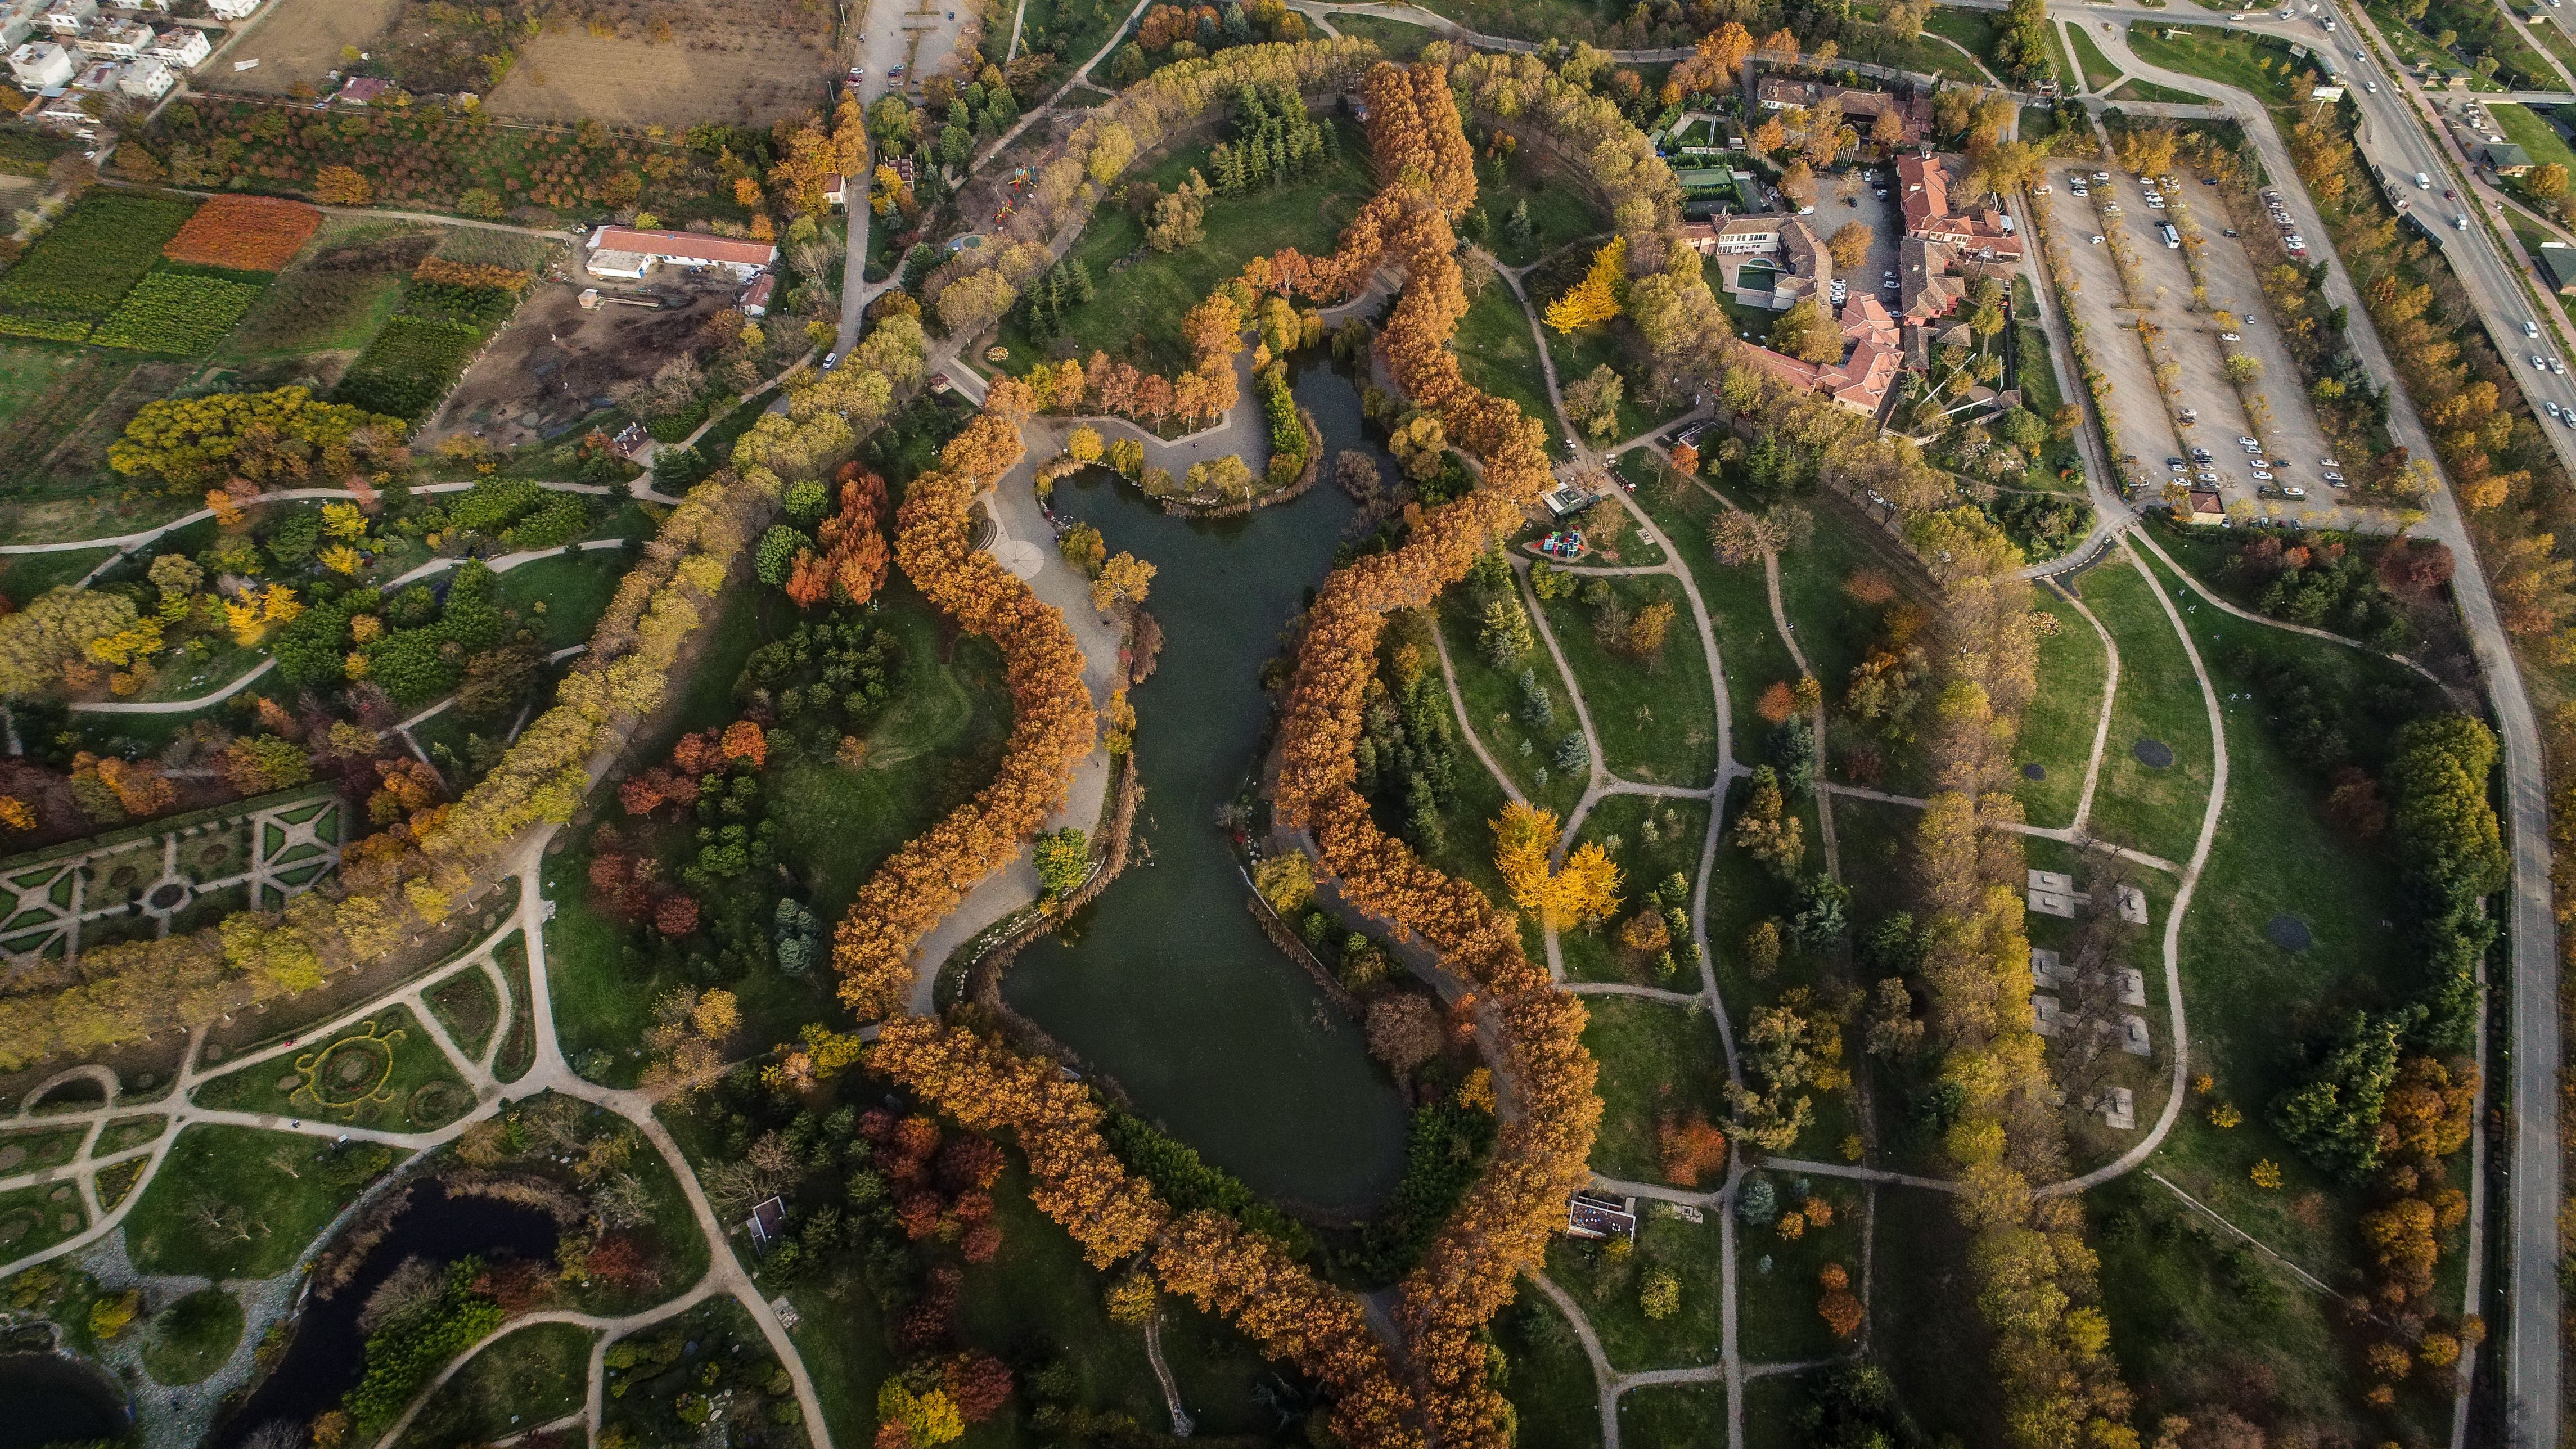 Slide 62 of 73: BURSA, TURKEY - NOVEMBER 14: A drone photo shows an aerial view of yellowish and greenish trees during the autumn season at the Botanical Park in Bursa, Turkey on November 14, 2017. The Botanical Park, which established in 1998 and covers an area of 400.000 m2, has 8000 trees in 150 different species, 100.000 bushes in 76 diverse species, 20 species in 50.000 shrubs and apart from these it has Japanish Garden and British Garden and French Garden.